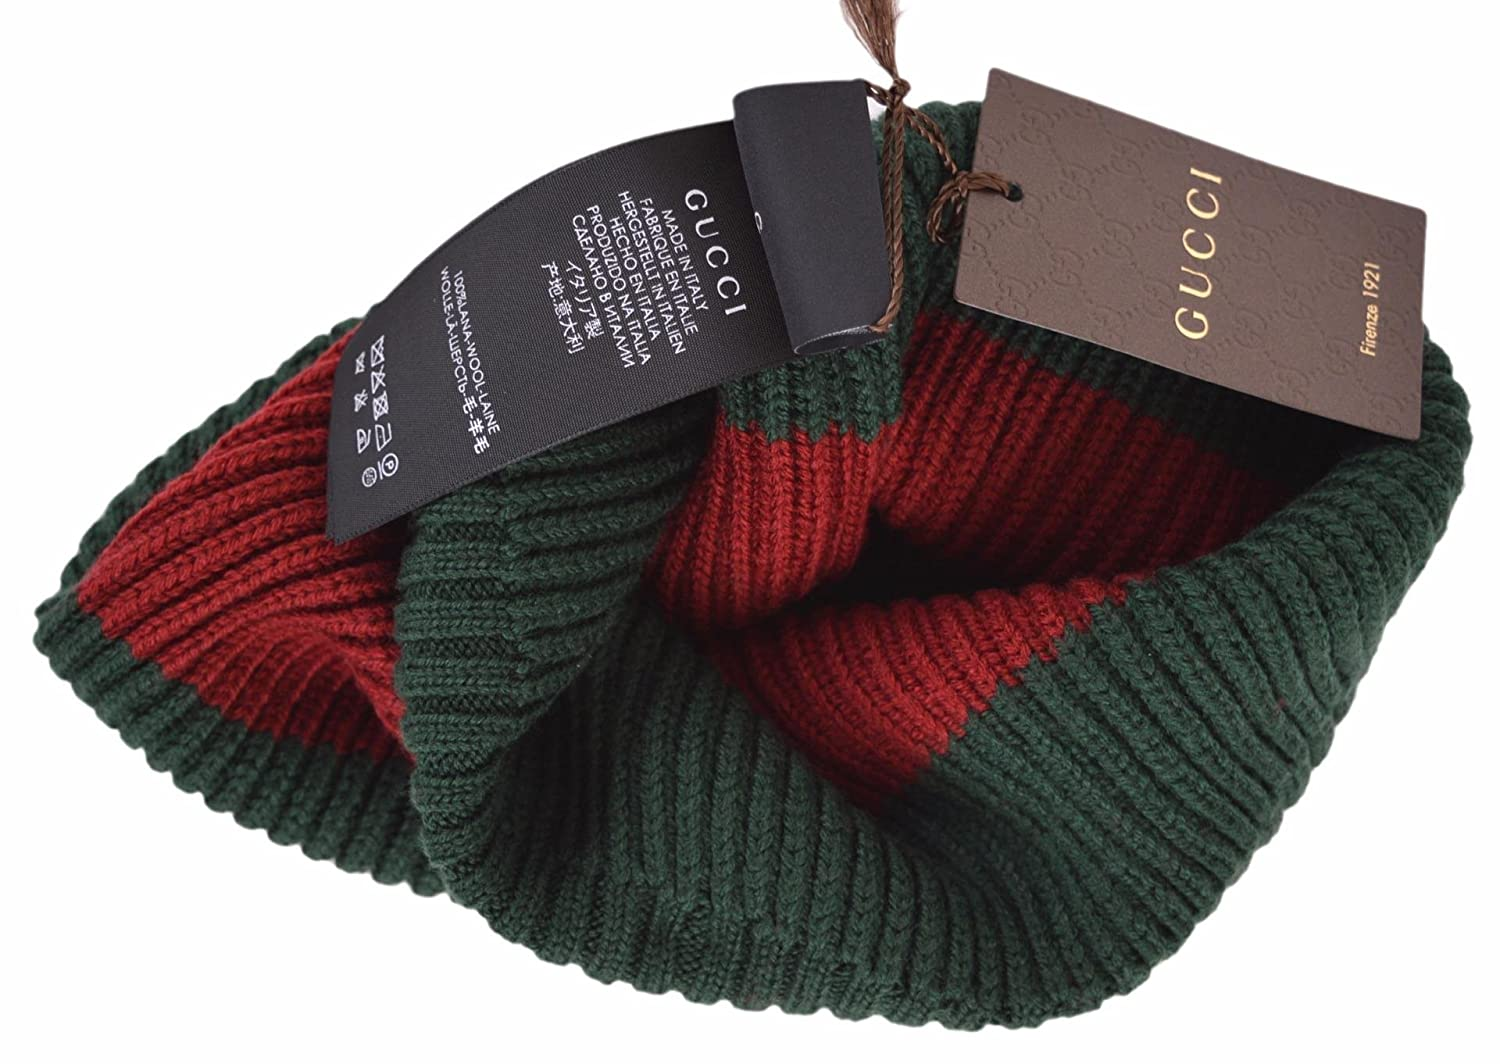 2b2f2614001 Gucci Men s Wool Green Red Interlocking GG Slouchy Beanie Ski Hat   Amazon.co.uk  Clothing